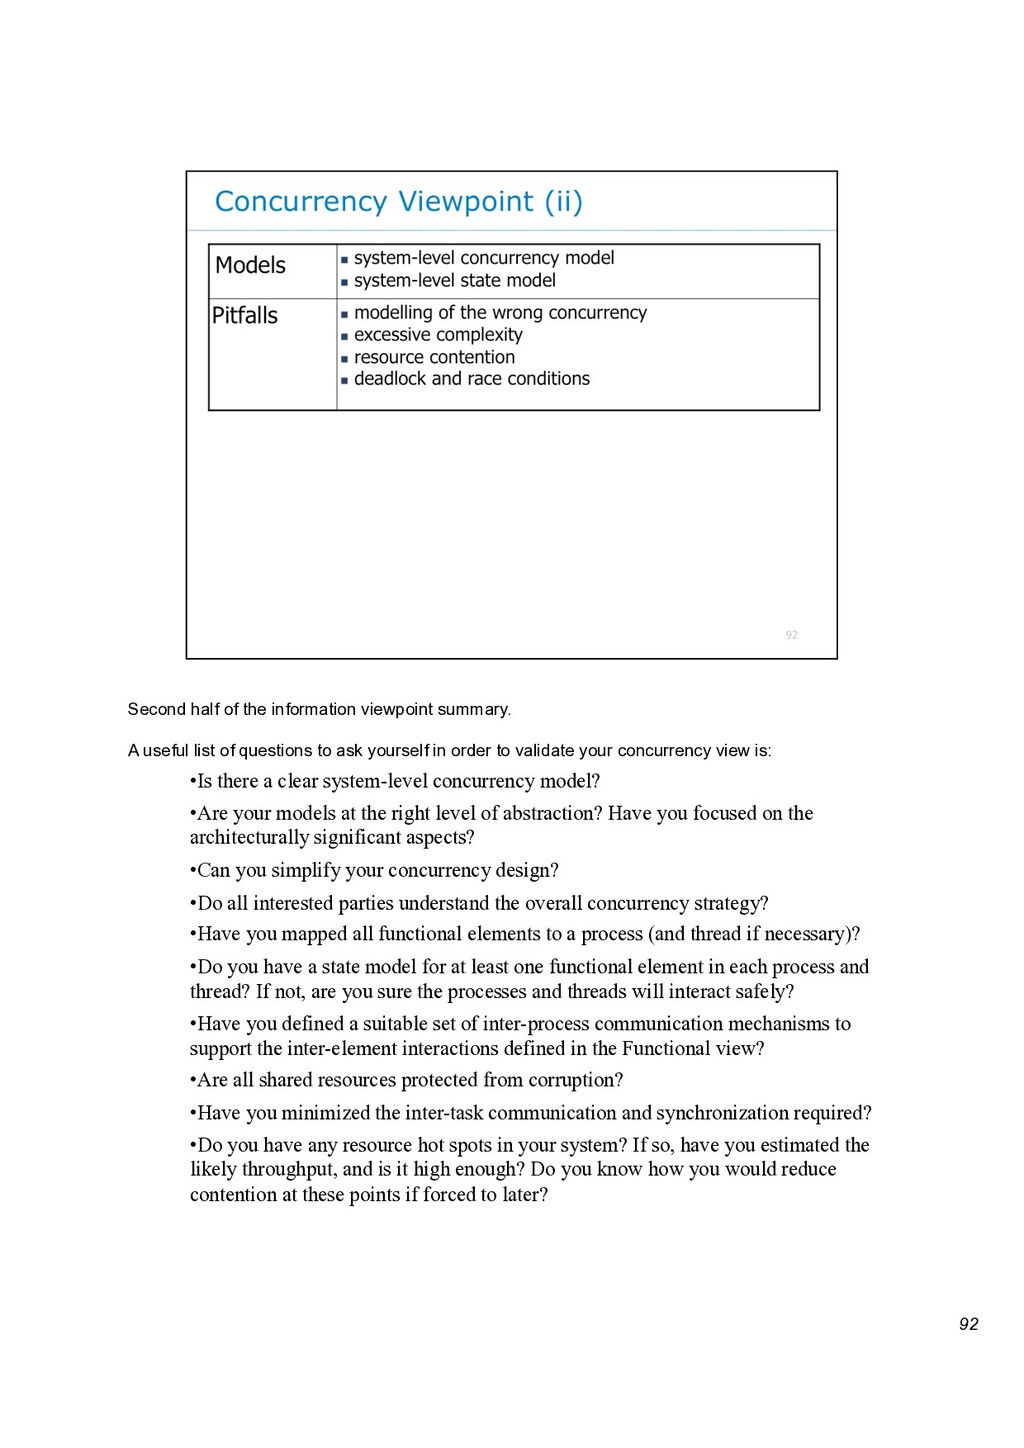 92 Second half of the information viewpoint sum...